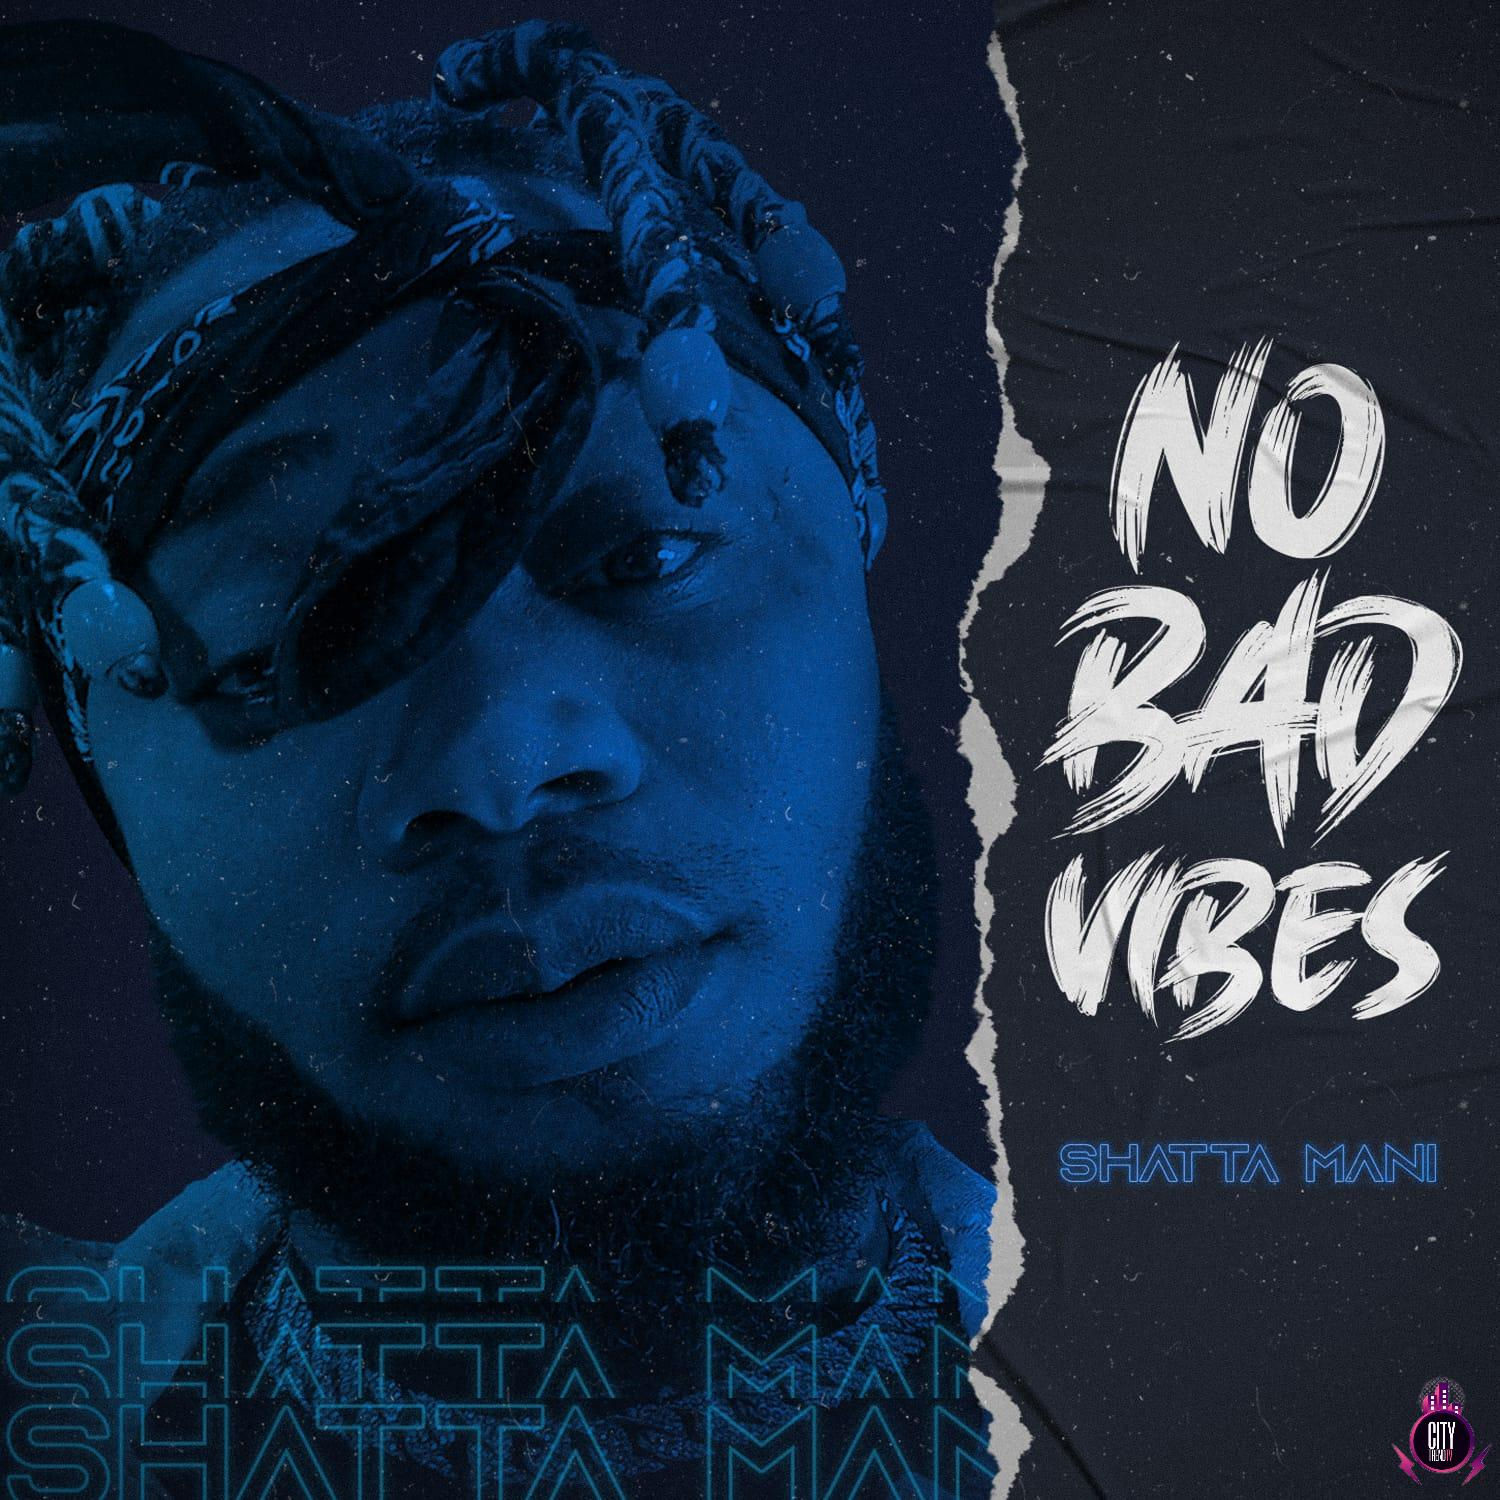 Download Shatta Mani – No Bad Vibes Complete EP